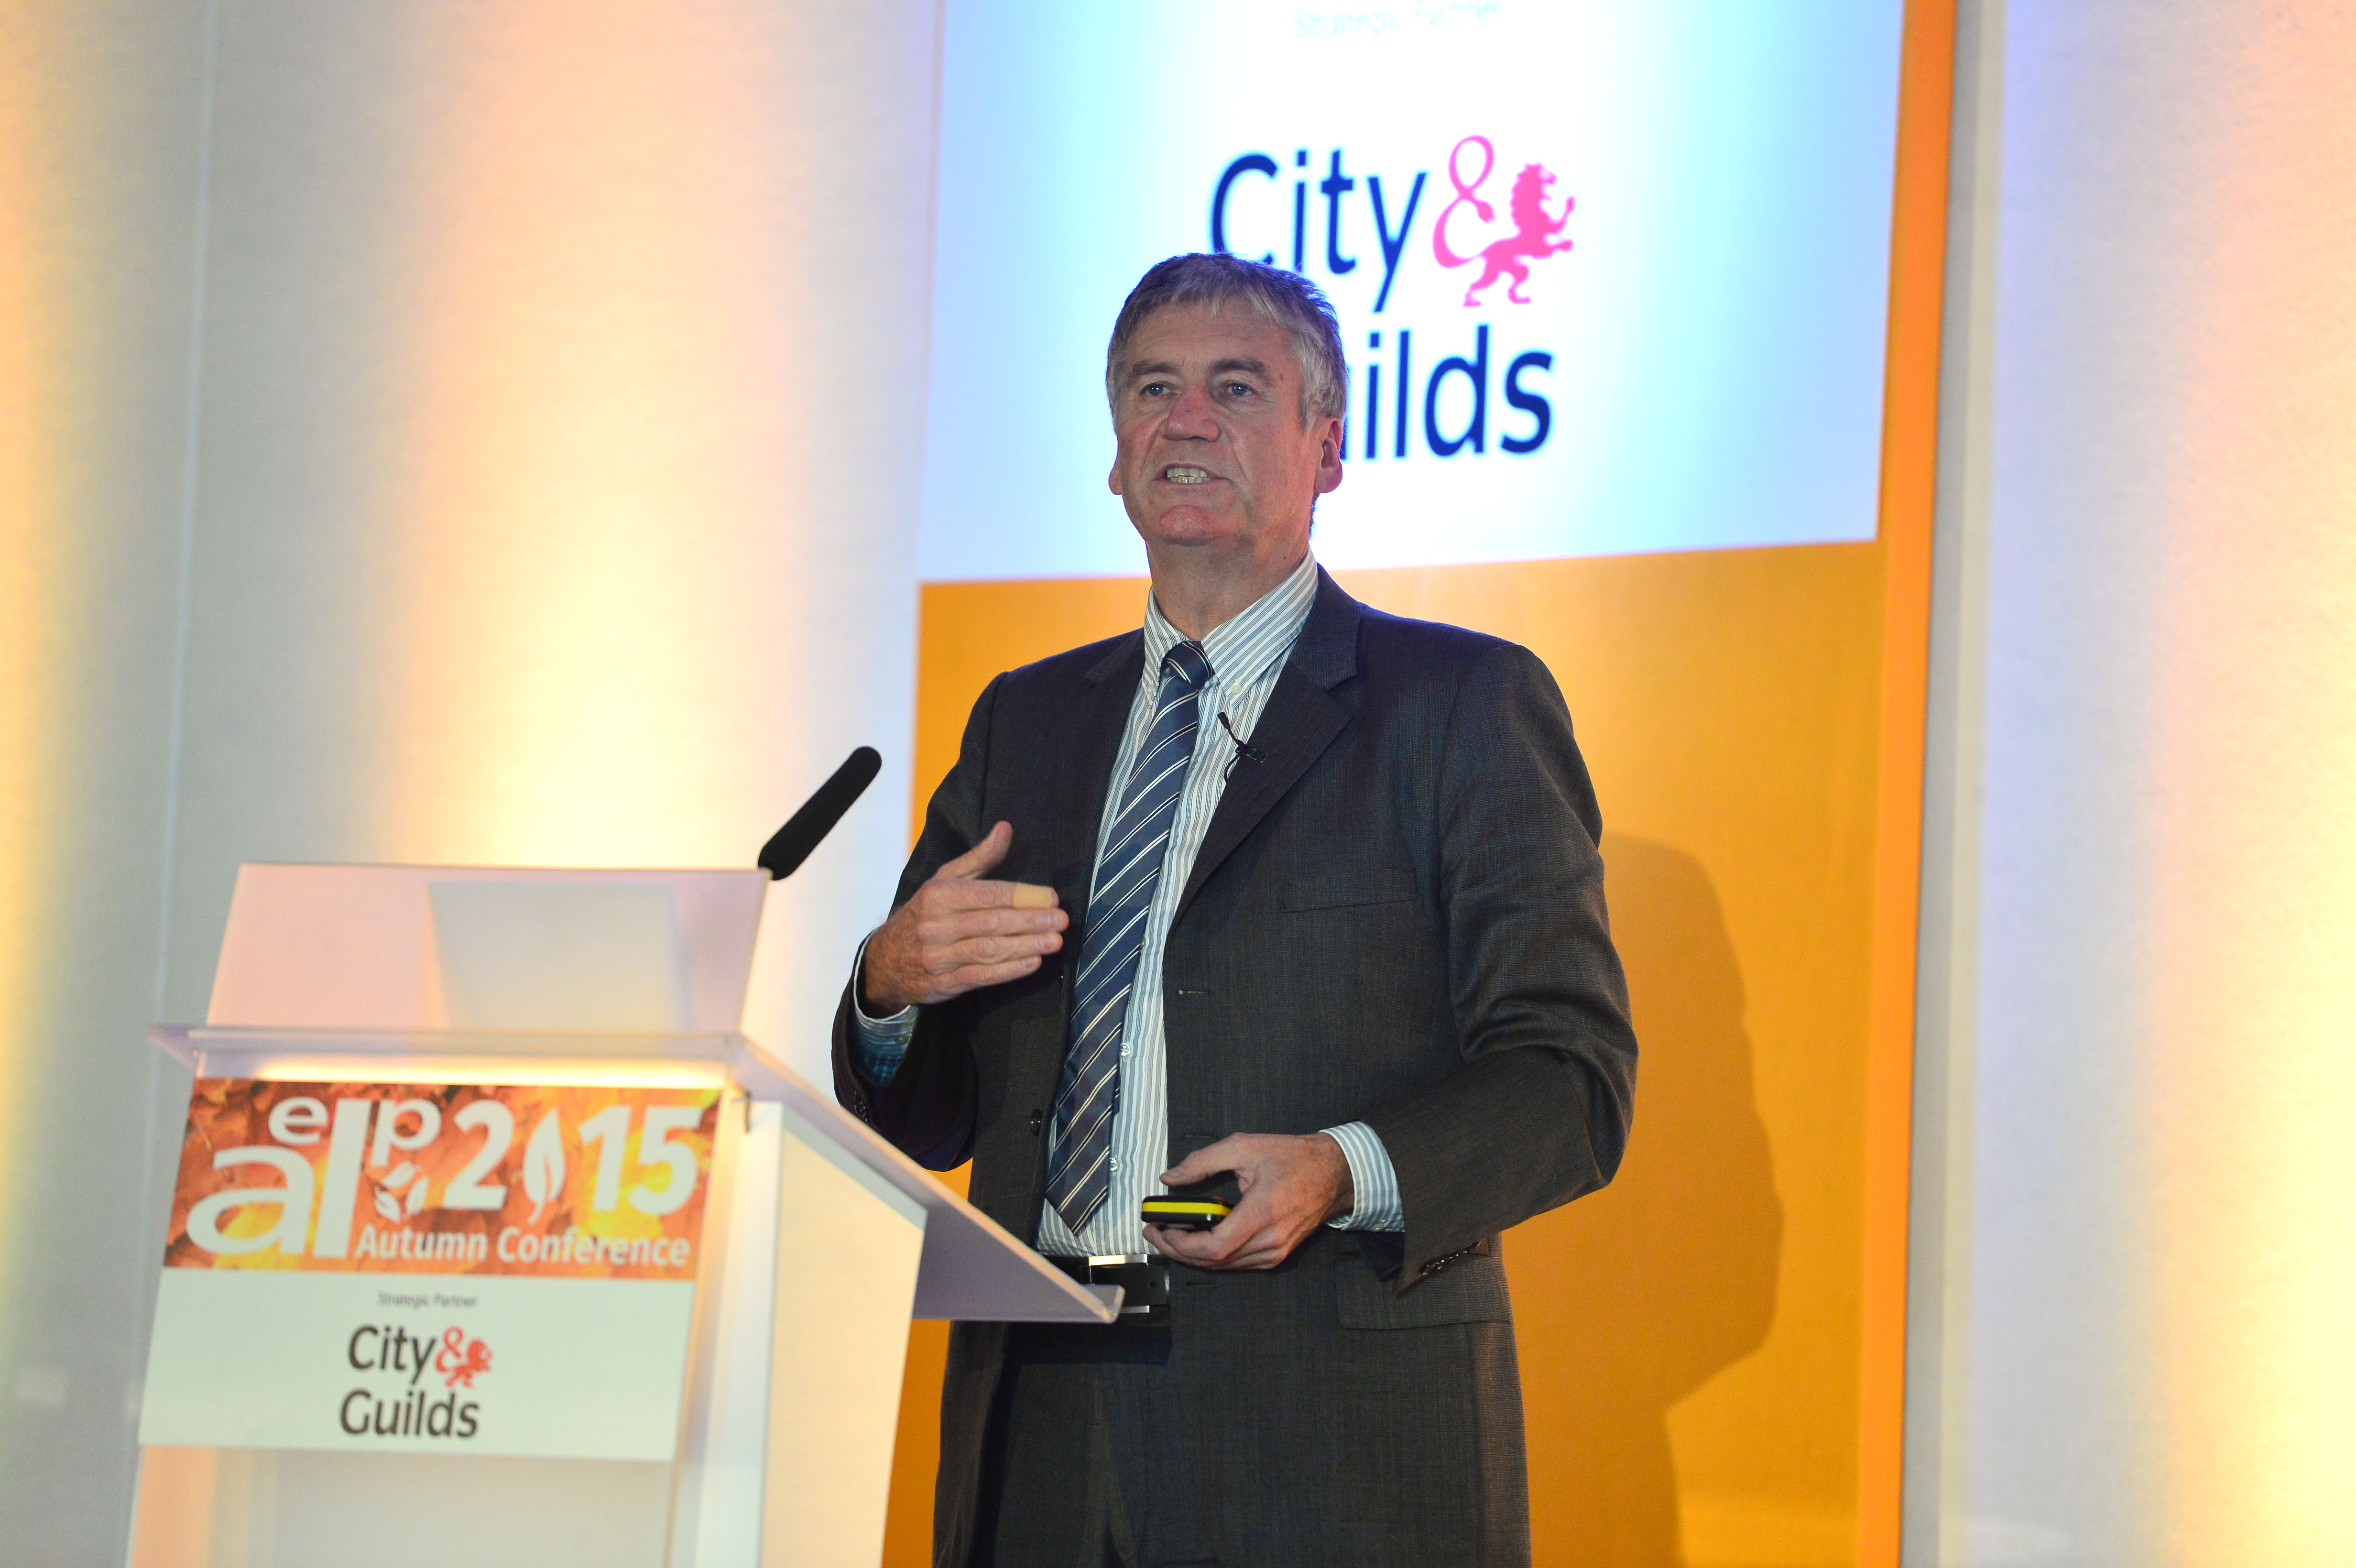 Richard Guy, City & Guilds head of apprenticeships